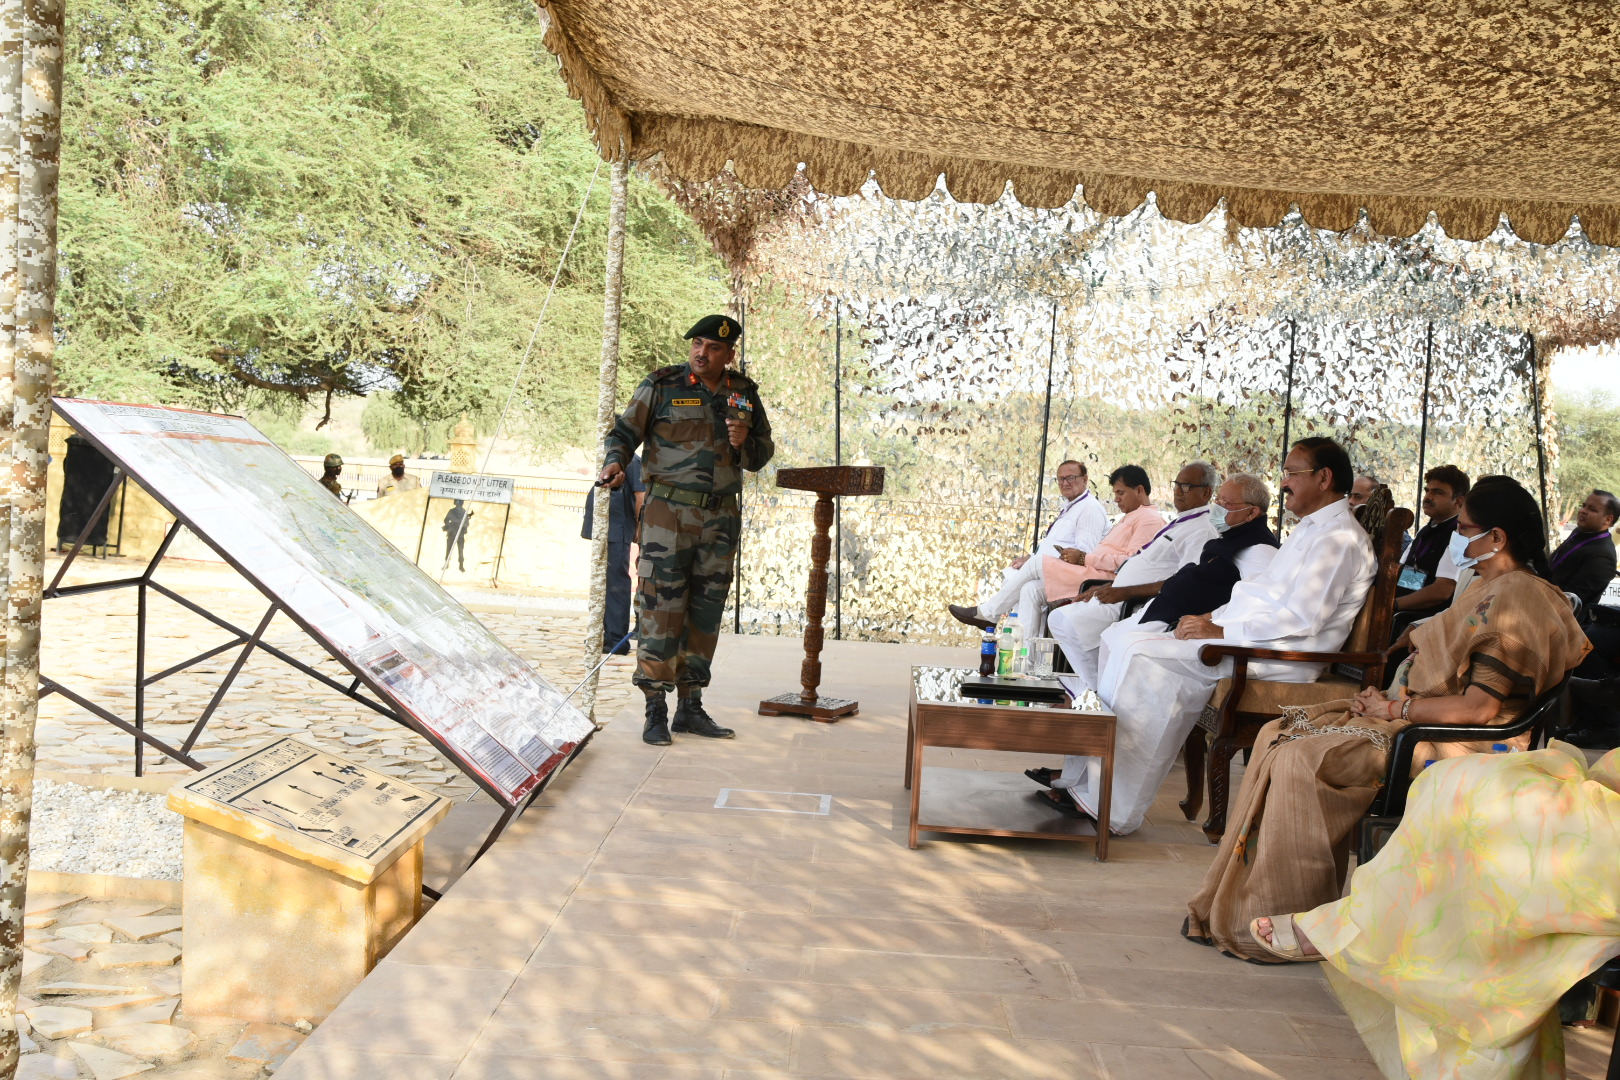 The Vice President, Shri M. Venkaiah Naidu, being briefed at the historic at the historic Laungewala Battle Site in Jaisalmer, Rajasthan on September 26, 2021.